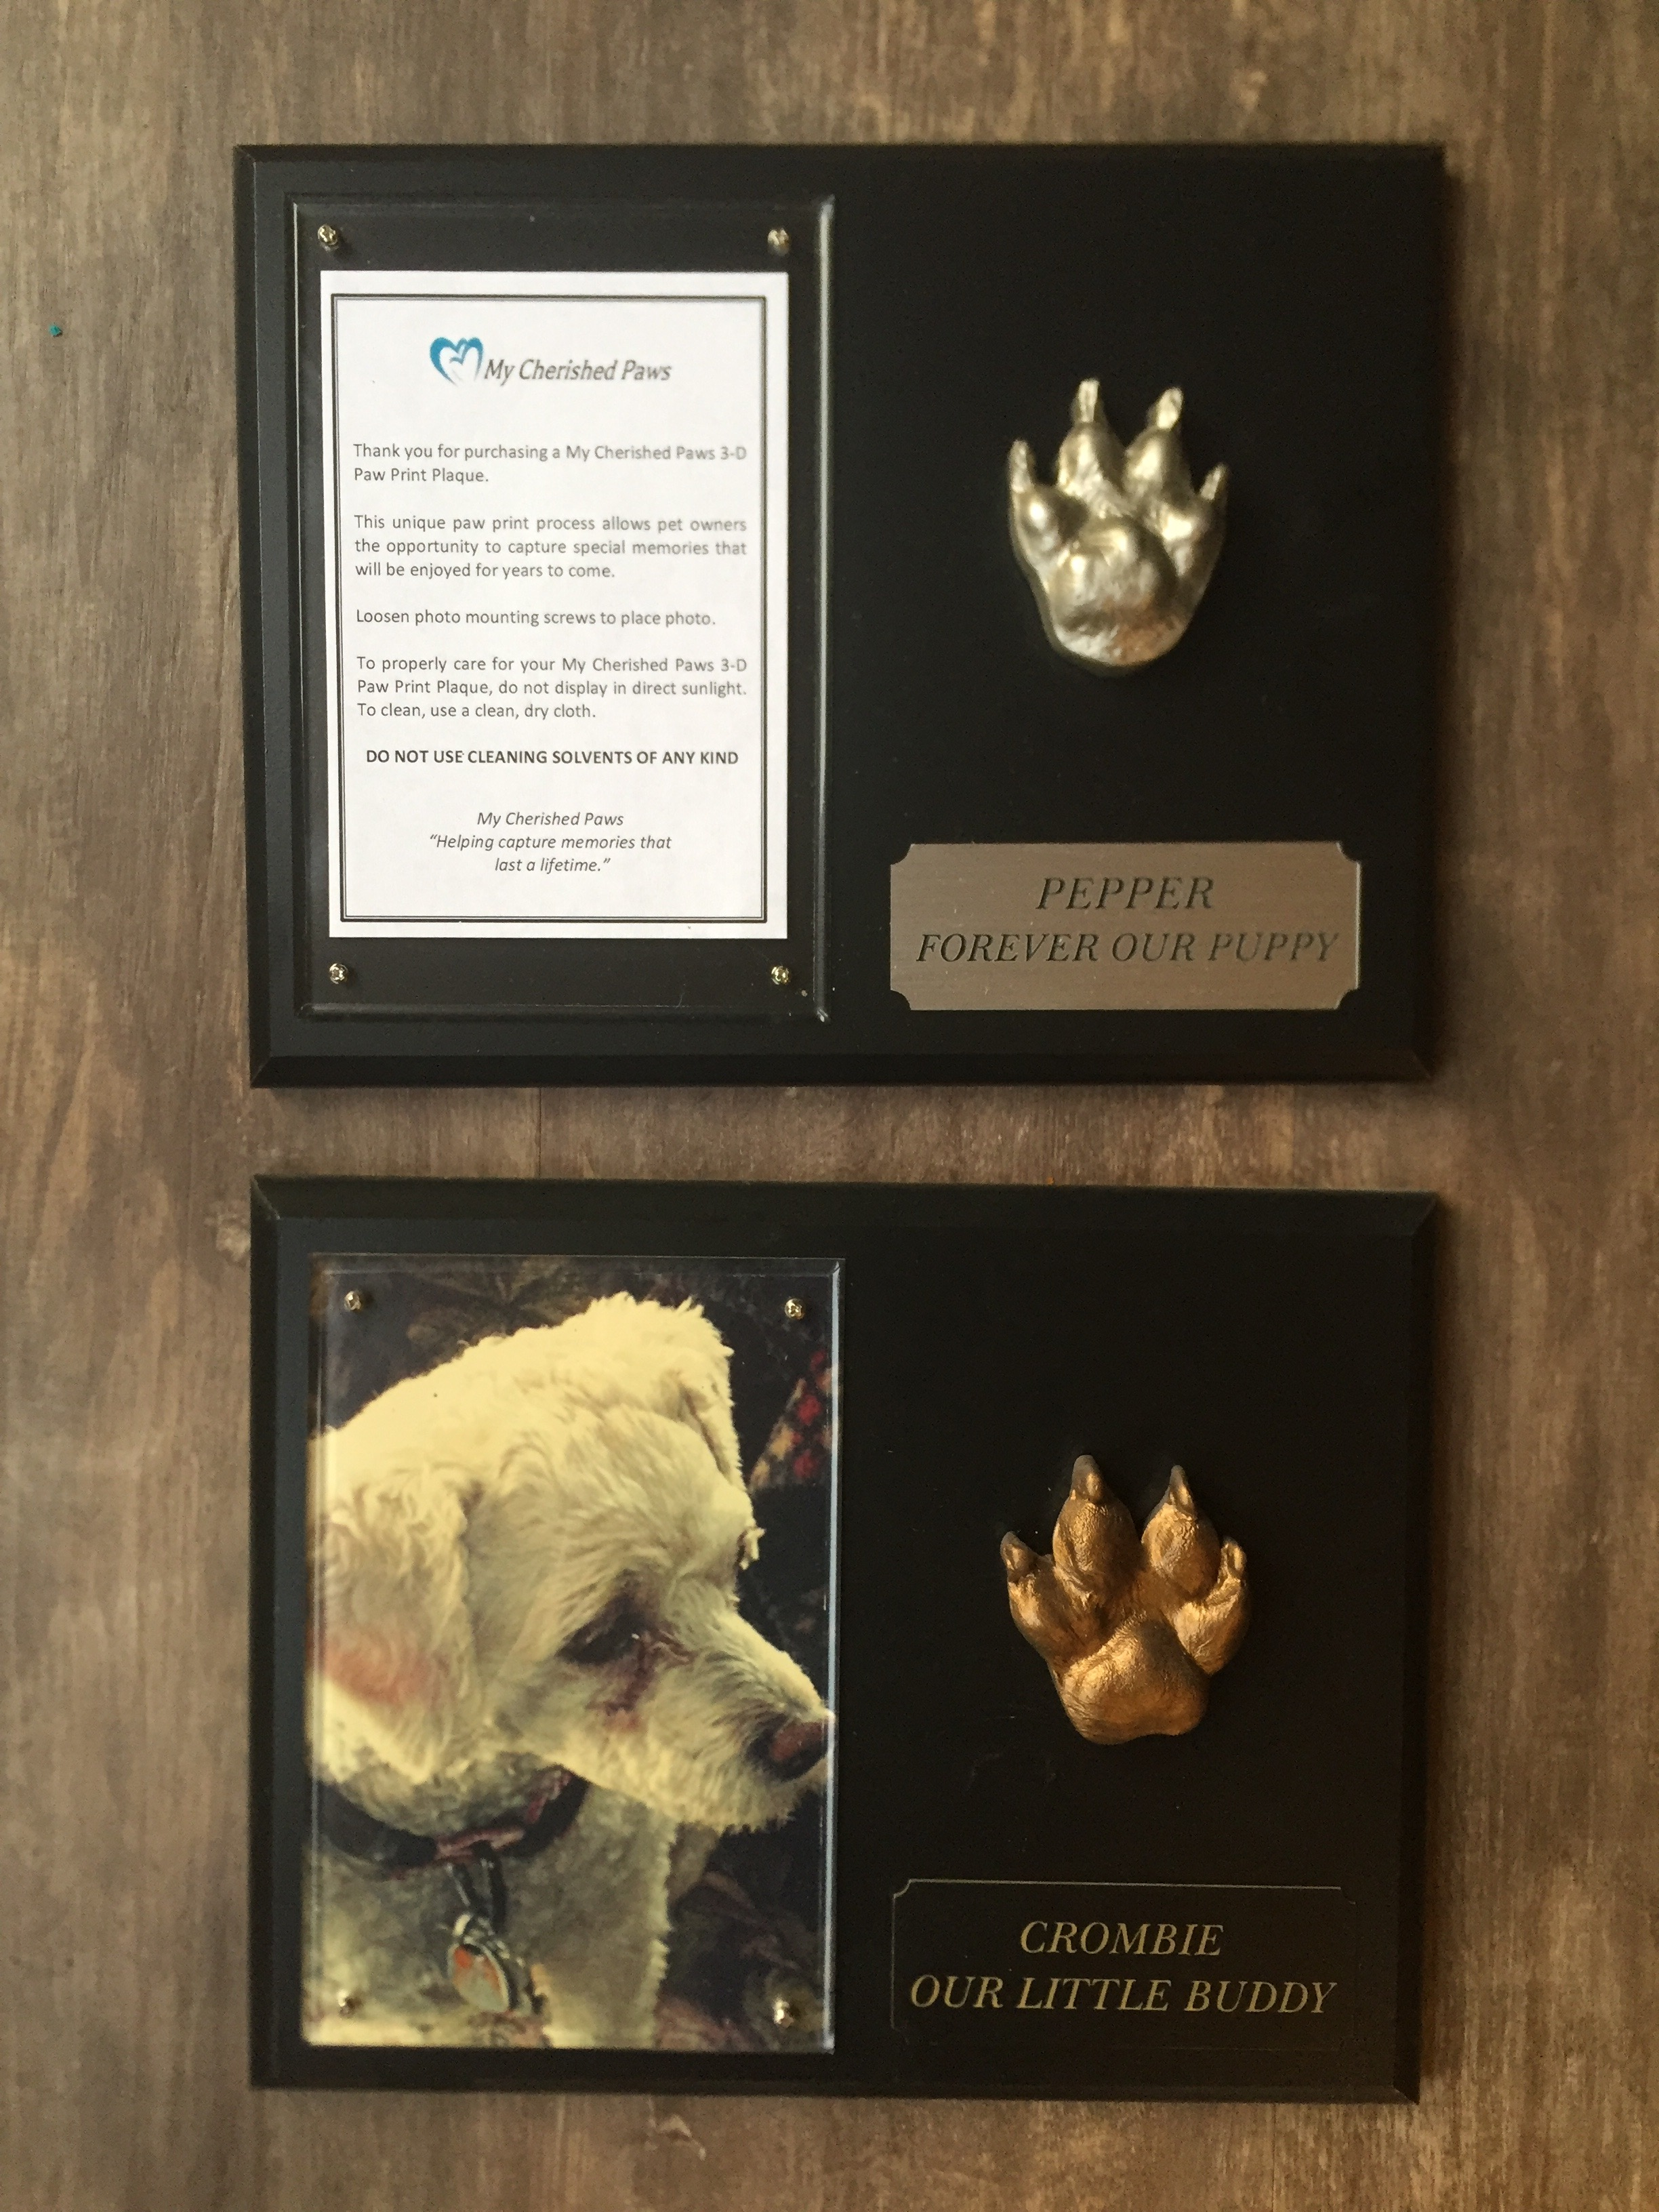 This is Pepper's plaque, with her paw print - I just picked it up and still need to get a picture of her put in it. The bottom plaque is our dog Crombie that passed away in 2012. We miss both of our doggies! I love that we have these plaques to remember them daily!